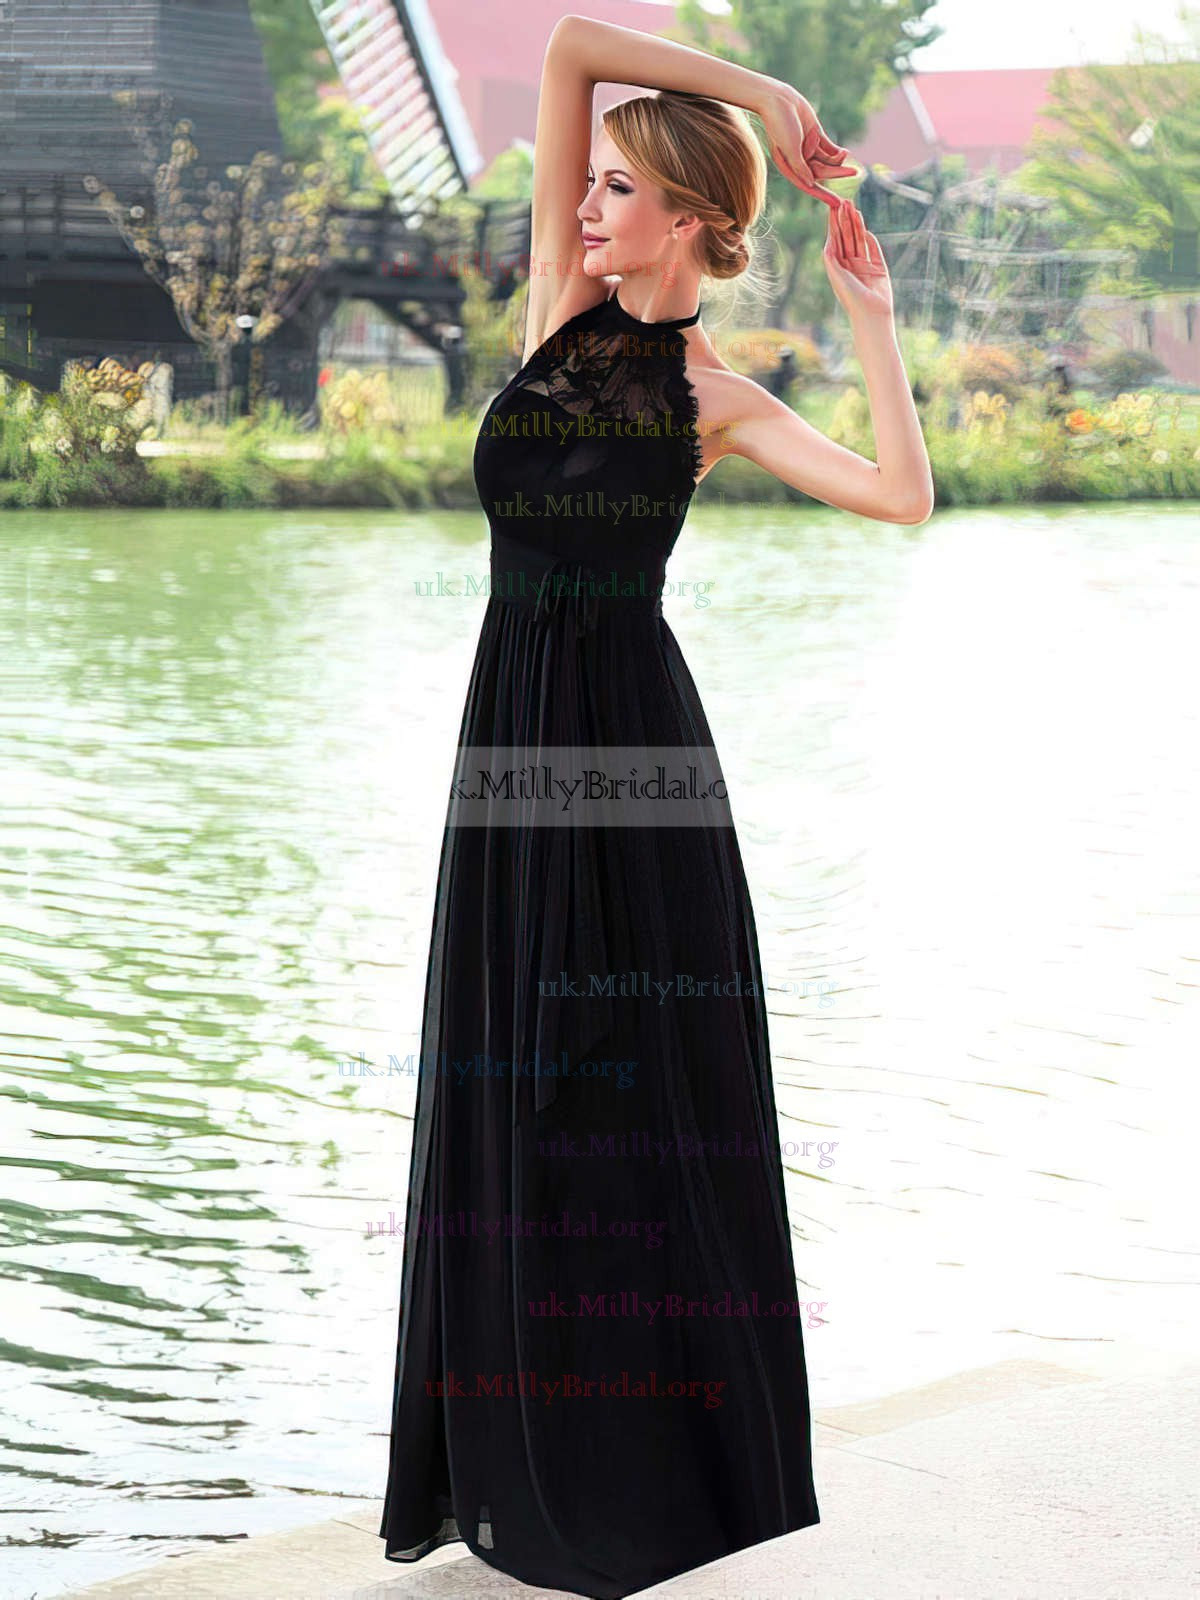 uk.millybridal.org/product/casual-a-line-halter-chiffon-with-lace-floor-length-black-backless-prom-dresses-ukm020102836-19402.html?utm_source=minipost&utm_medium=2124&utm_campaign=blog